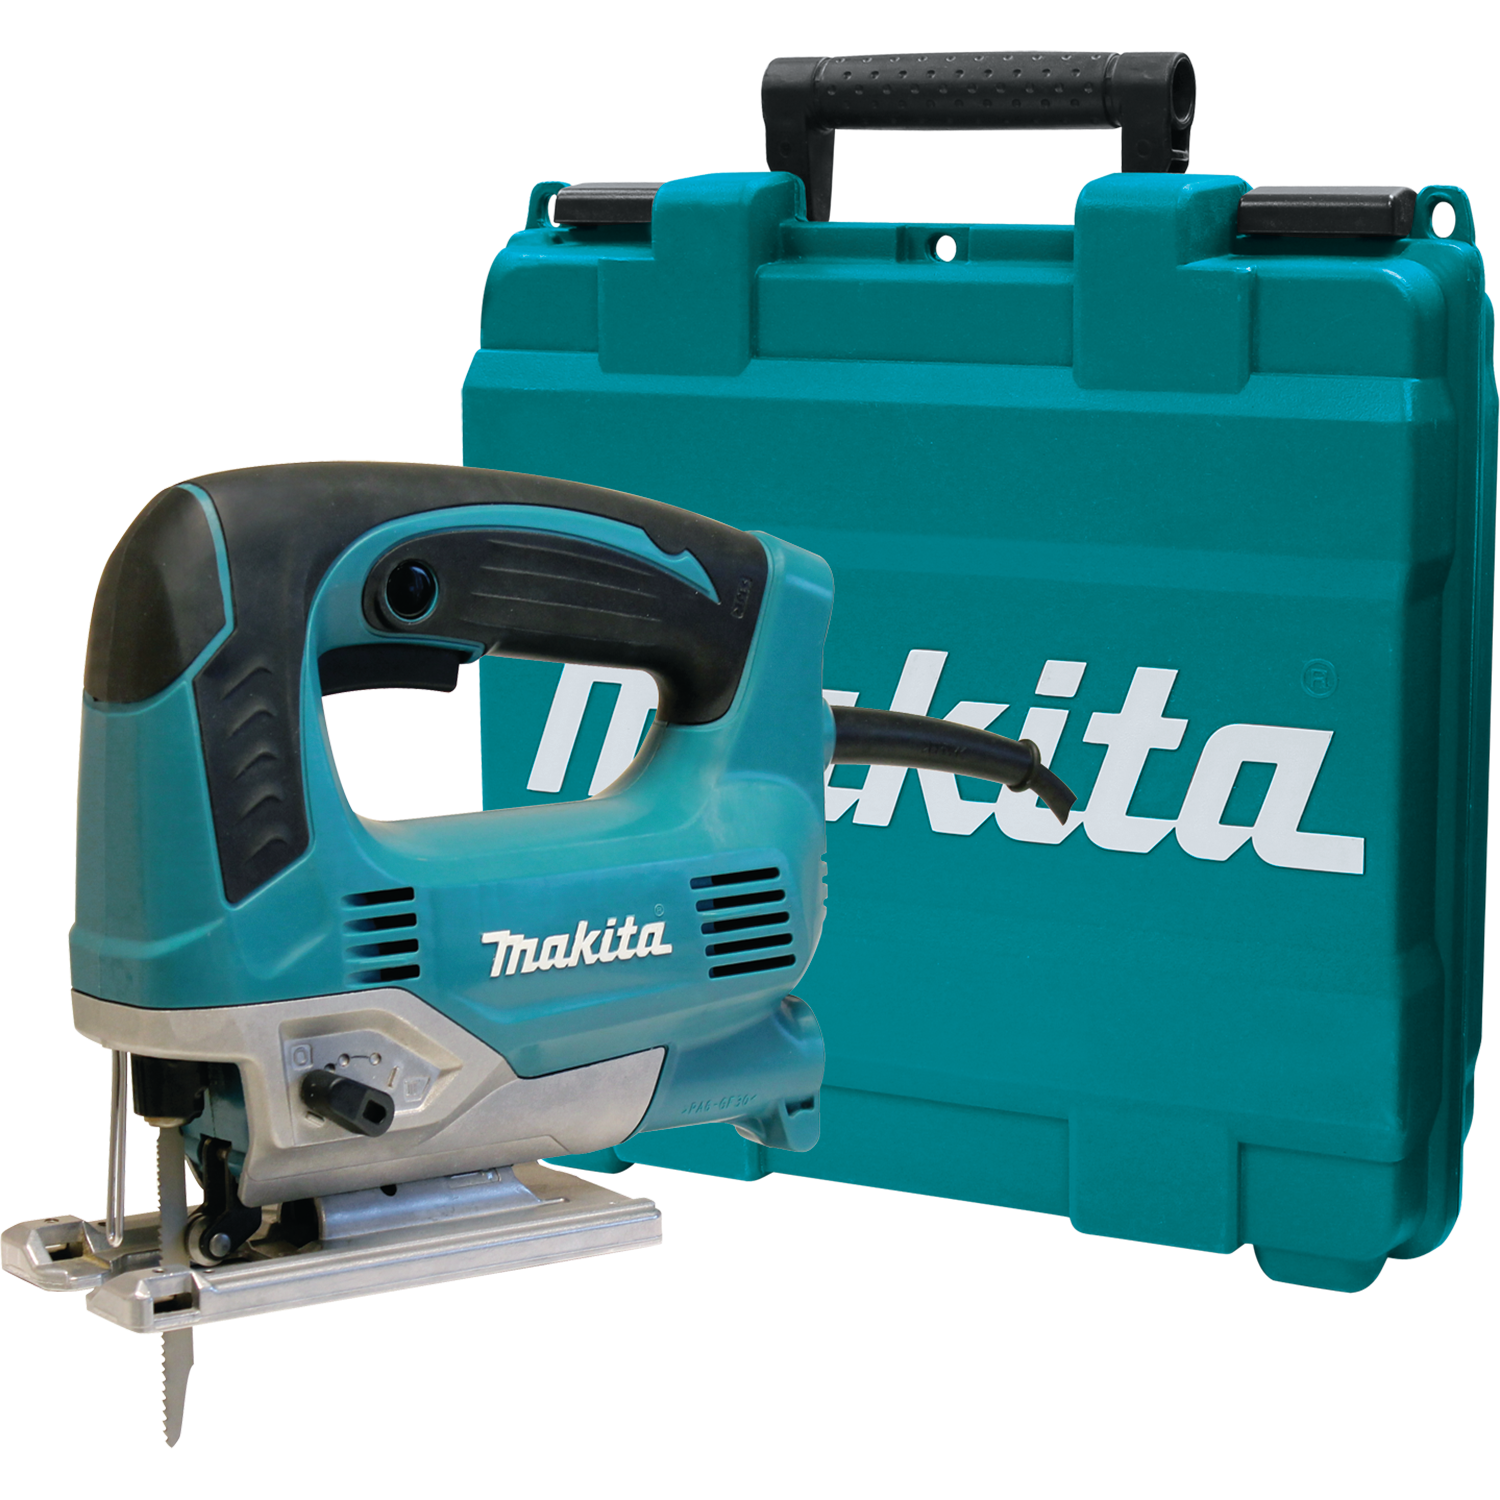 Makita usa product details jv0600k jv0600k greentooth Image collections